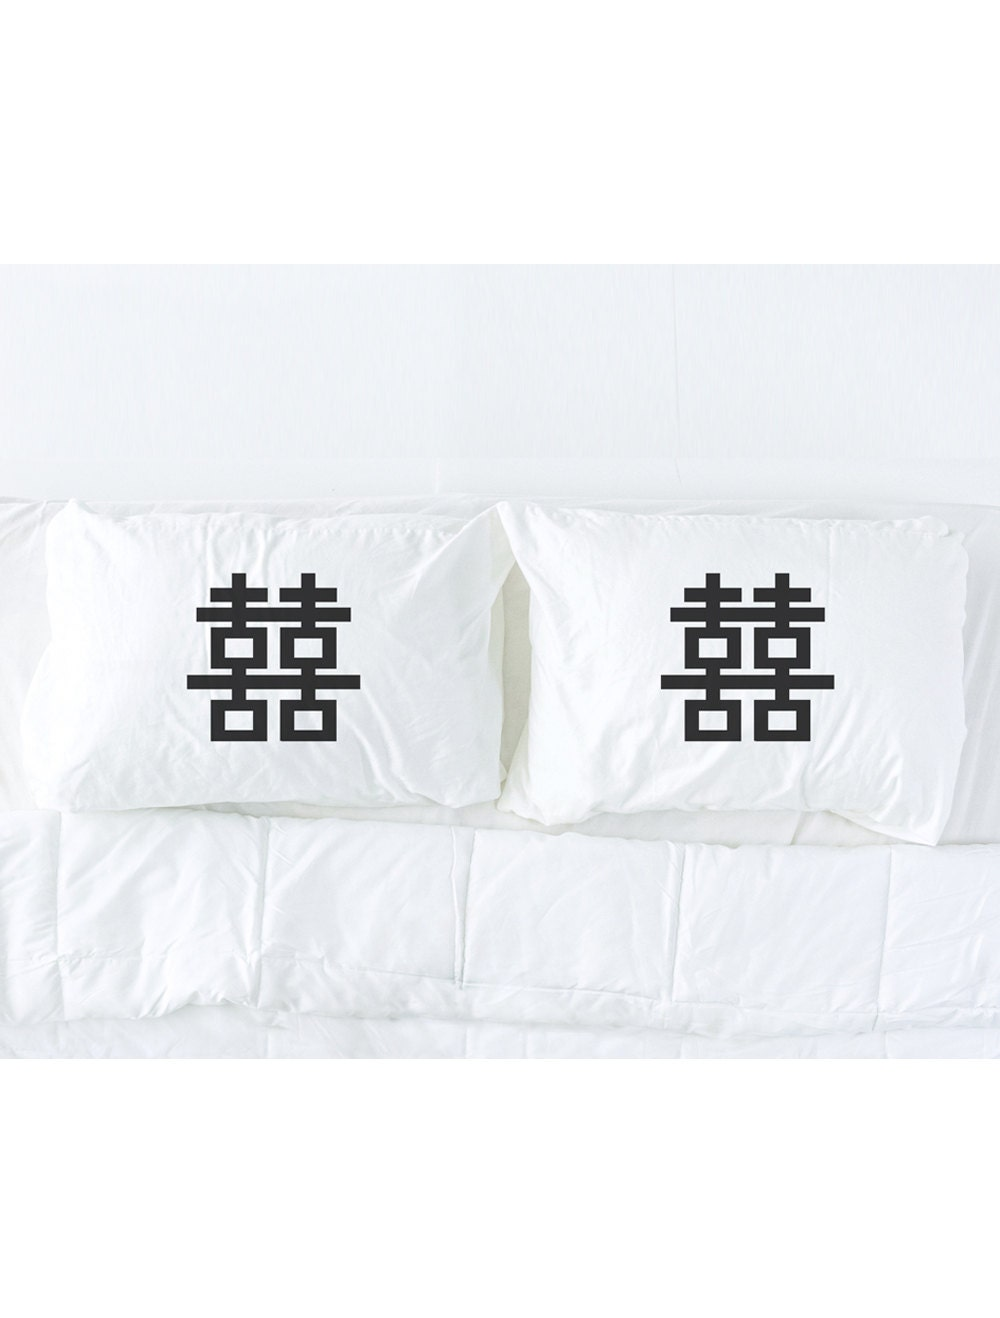 Double Happiness Pillowcase Set, Wedding Gift, Chinese Good Luck, His And  Hers Pillows, Couples Pillowcases, Pillow Talk Images